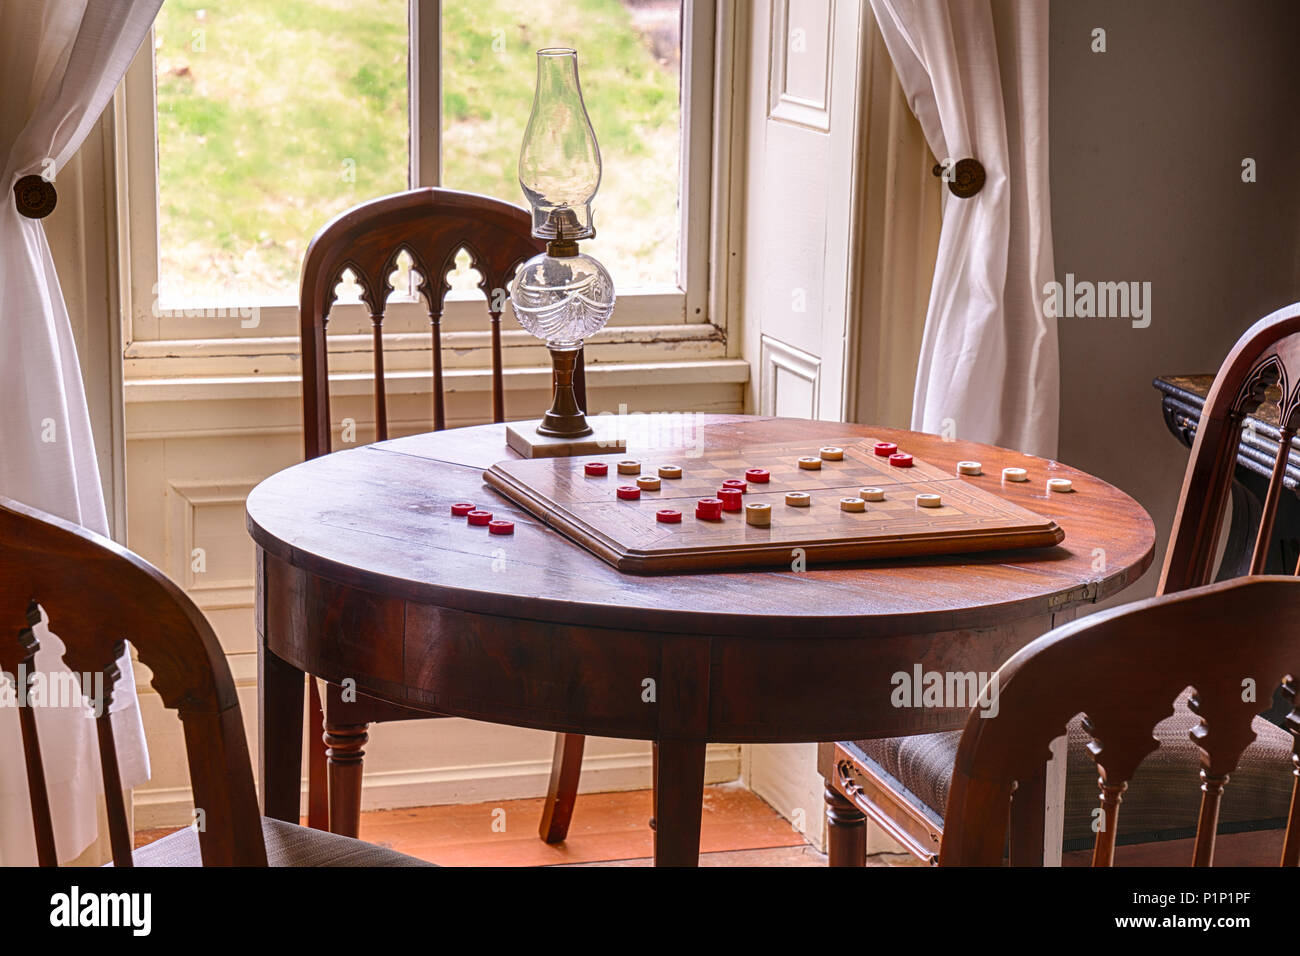 Checkers Game Set Up On a Table in a Historic Home Stock Photo